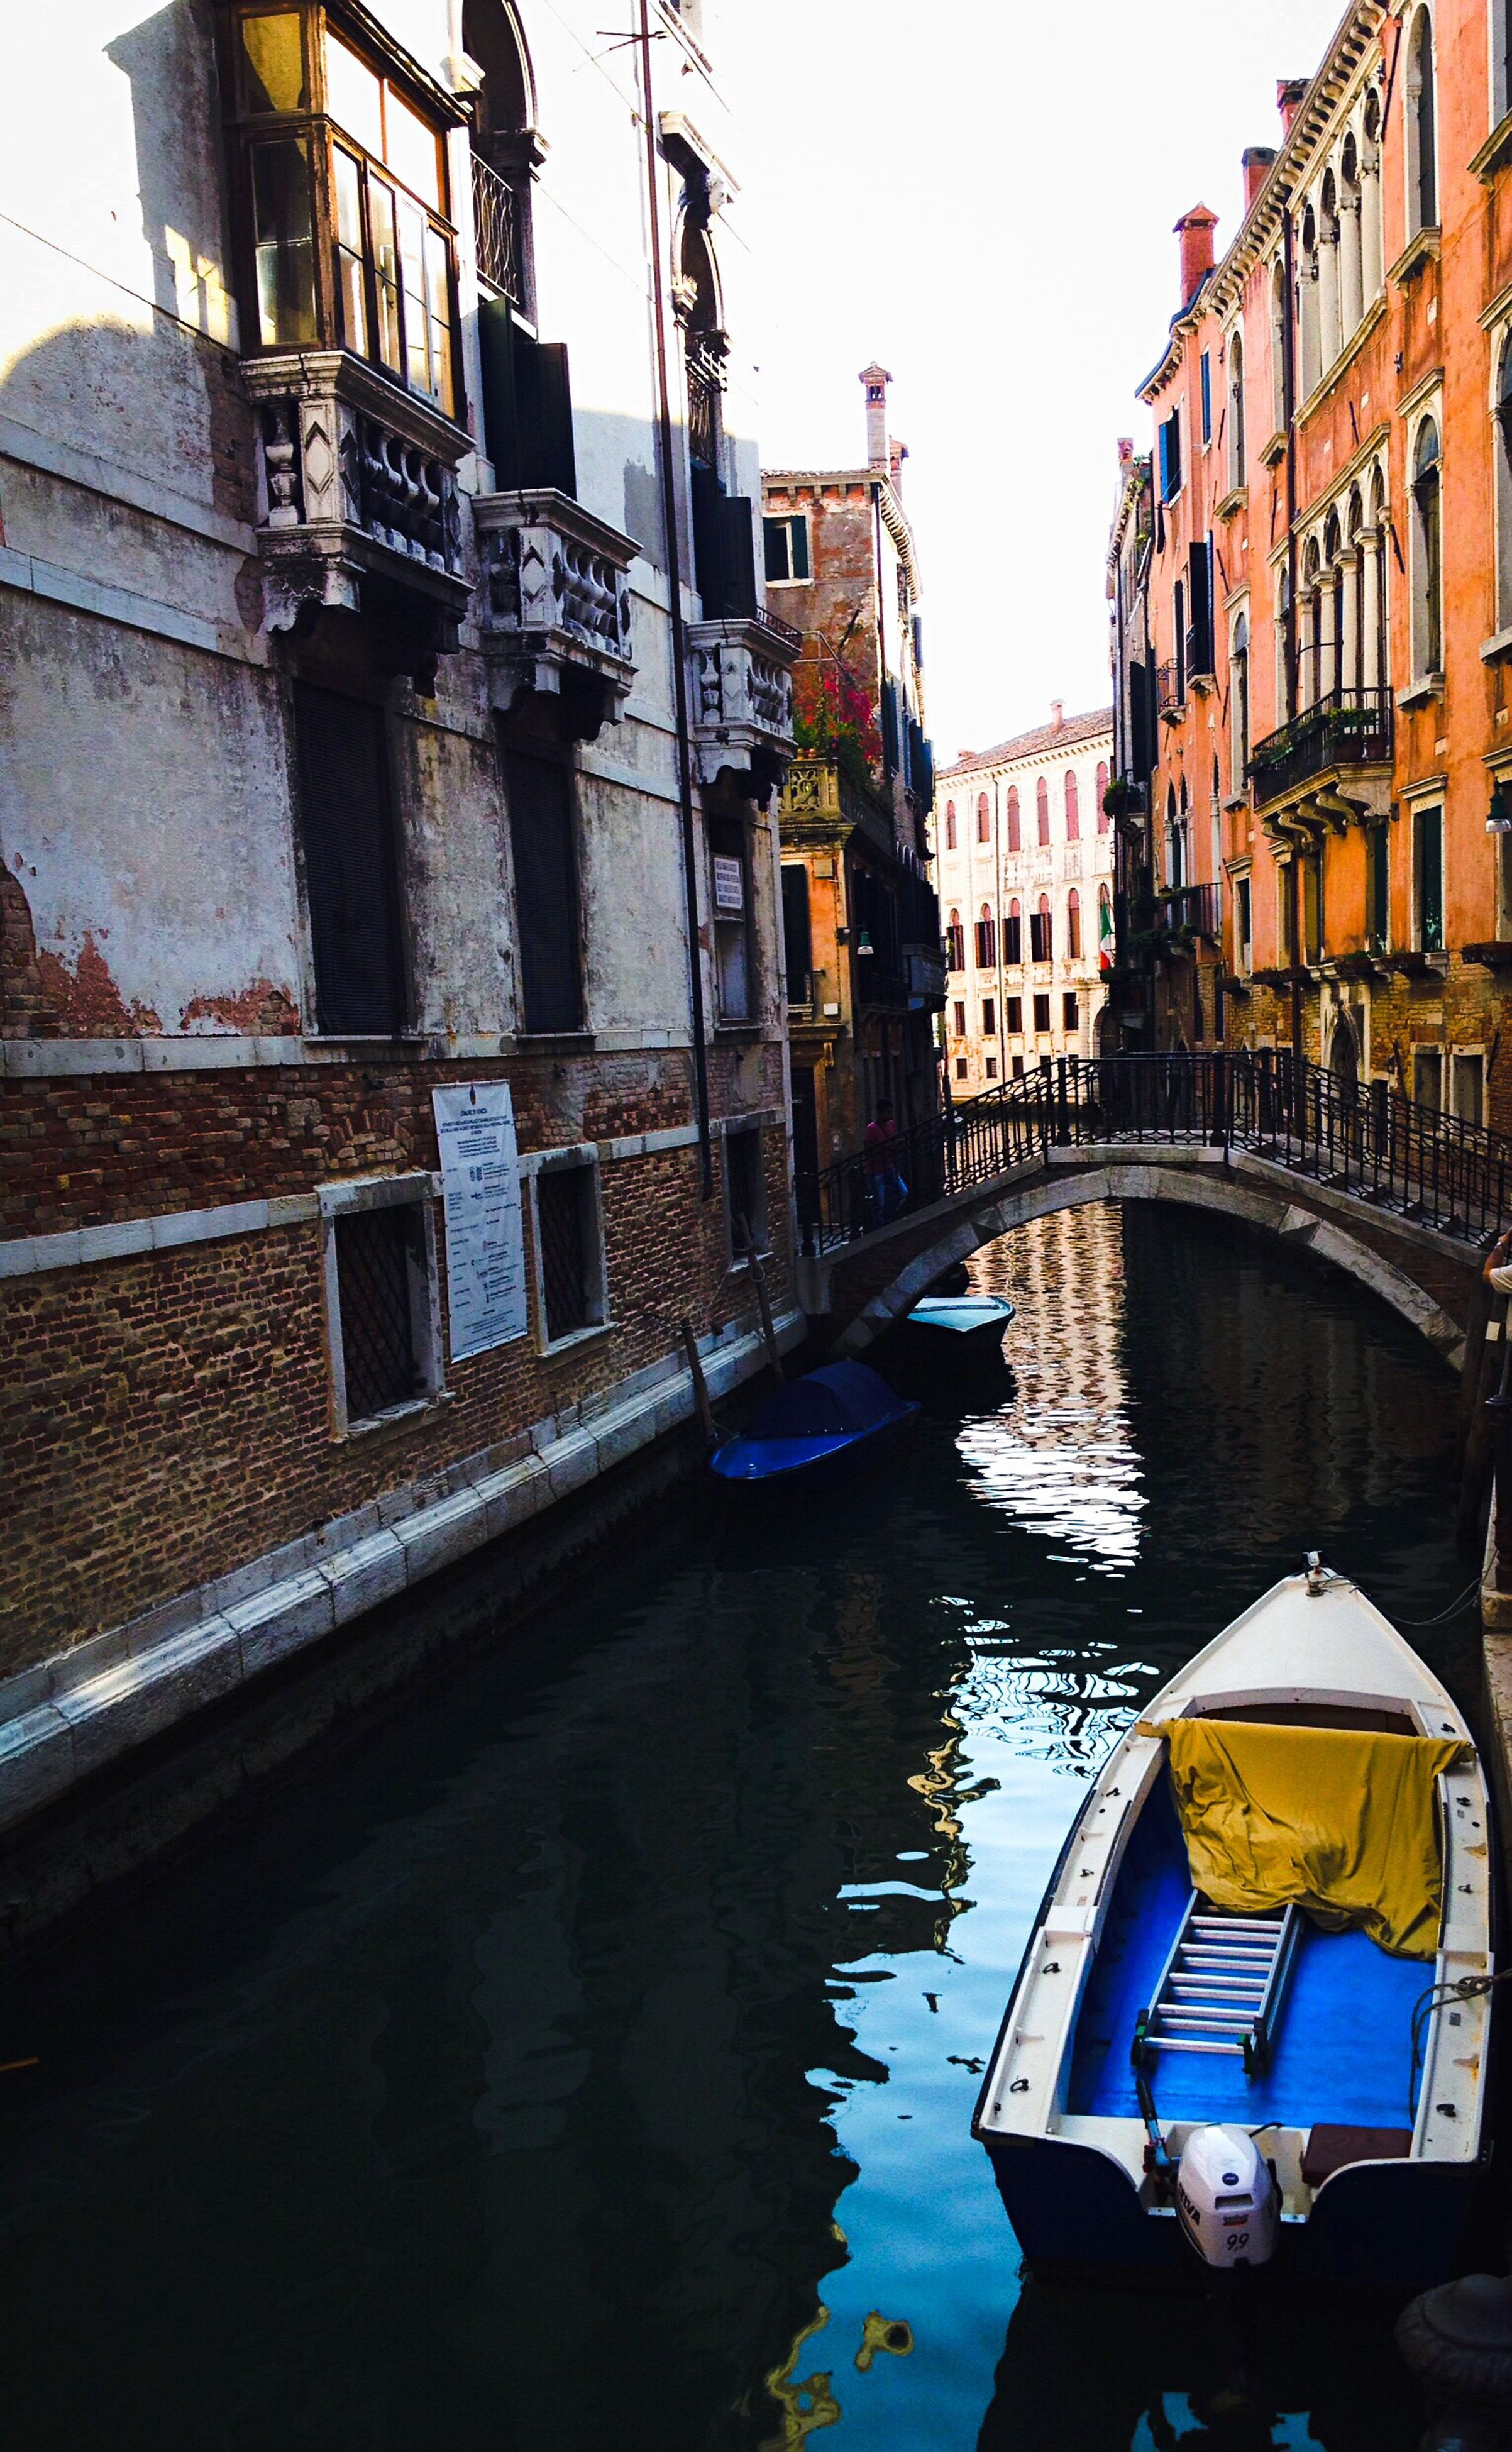 architecture, built structure, building exterior, water, nautical vessel, canal, boat, mode of transport, city, building, residential structure, residential building, day, outdoors, sky, no people, rippled, city life, travel destinations